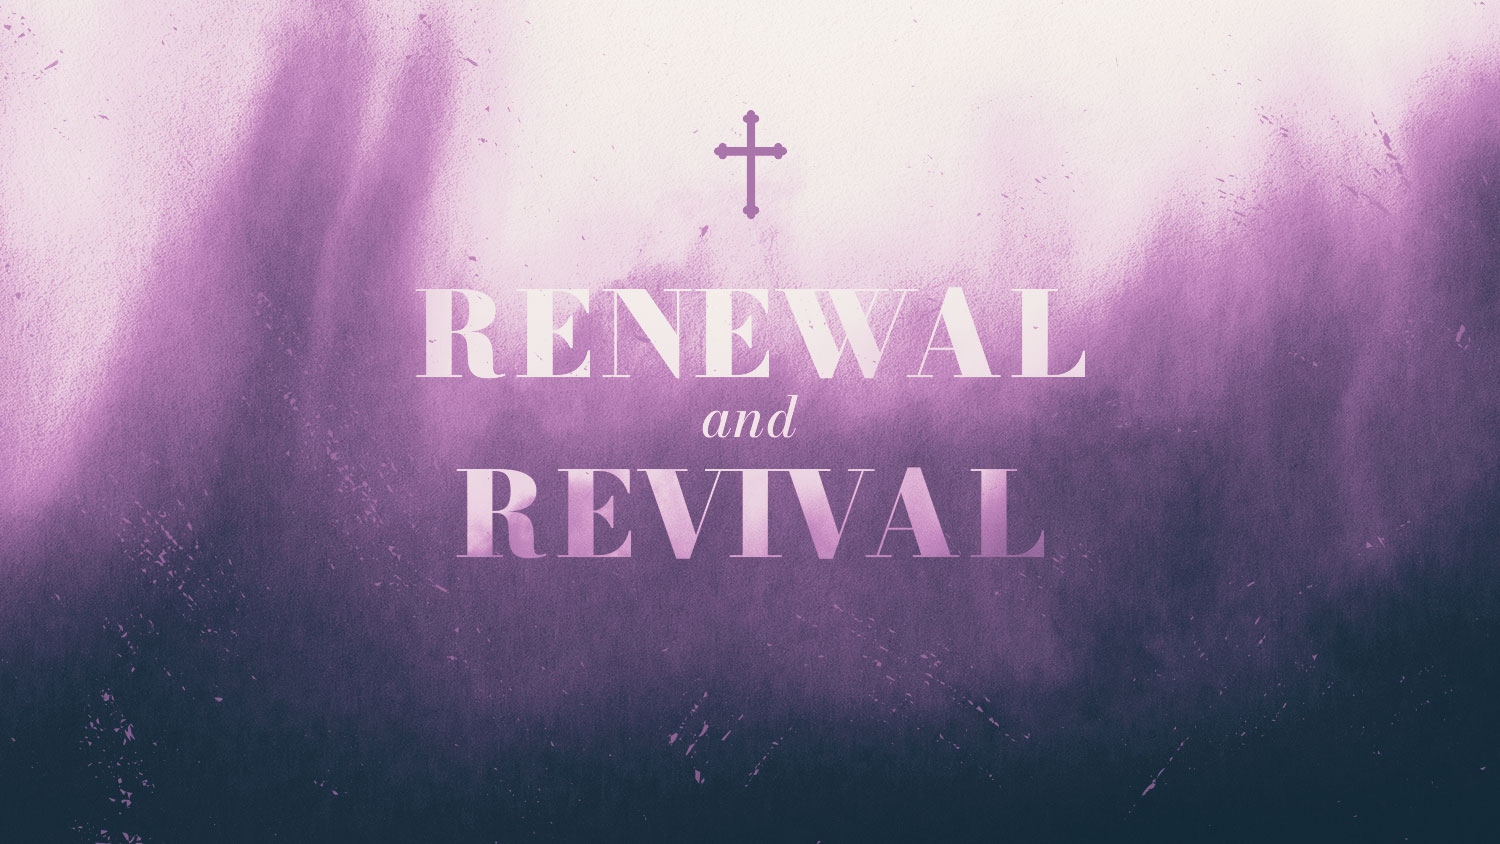 Renewal and Revival Image